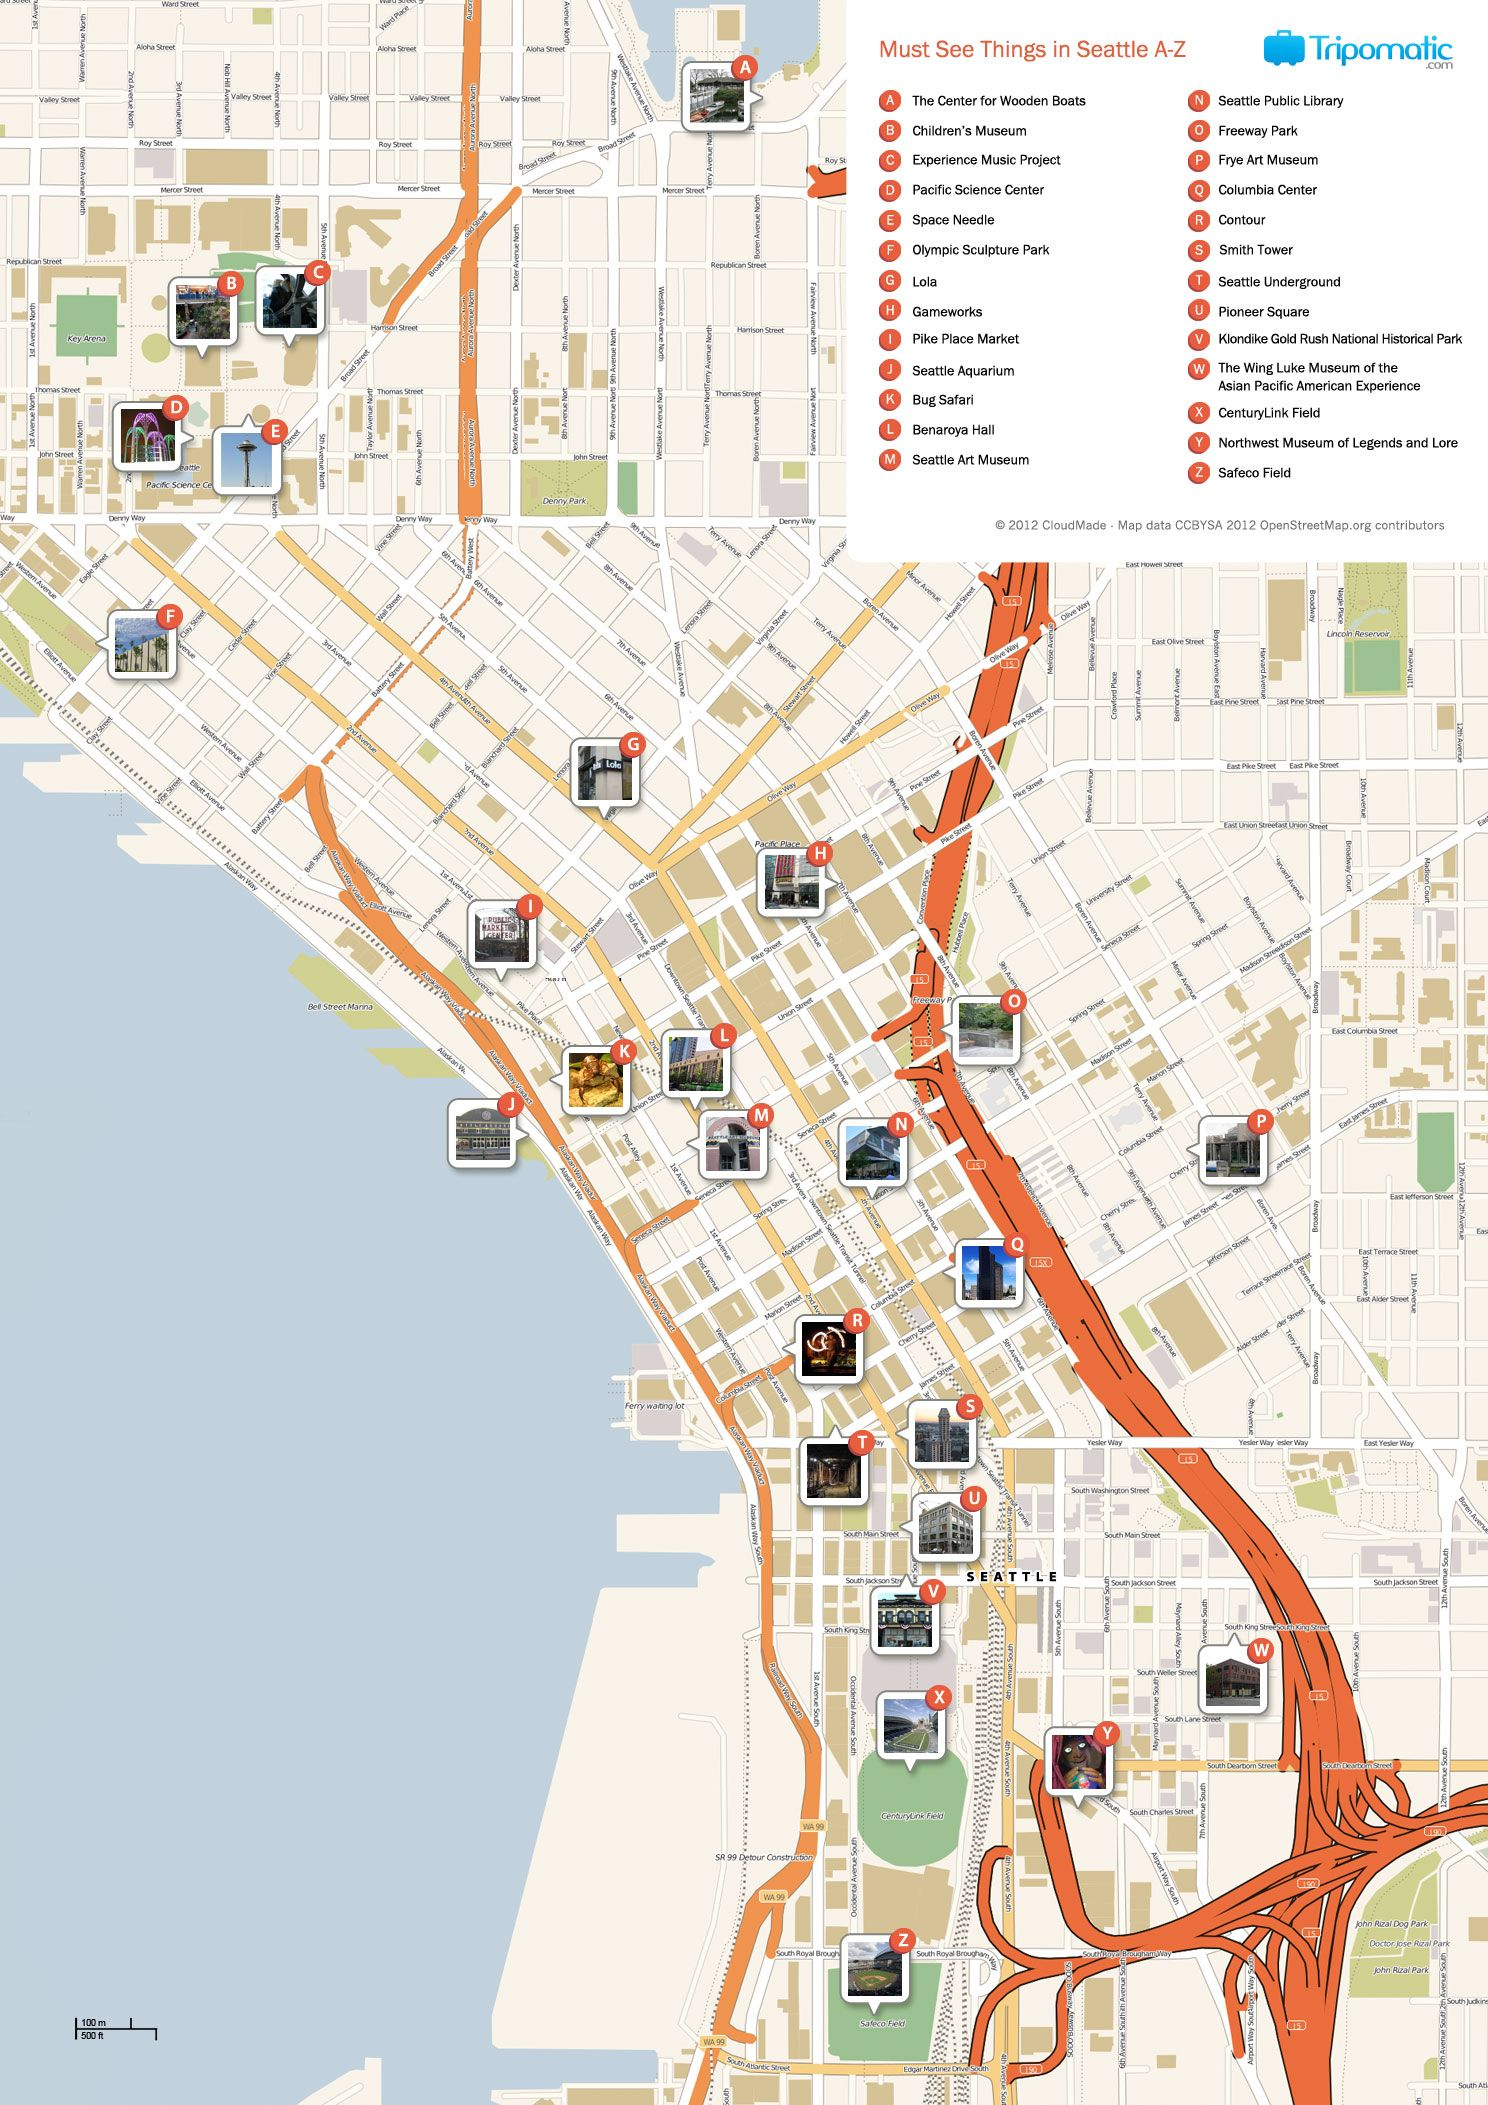 Free Printable Map of Seattle attractions from Tripomatic Get – Seattle Washington Map Tourist